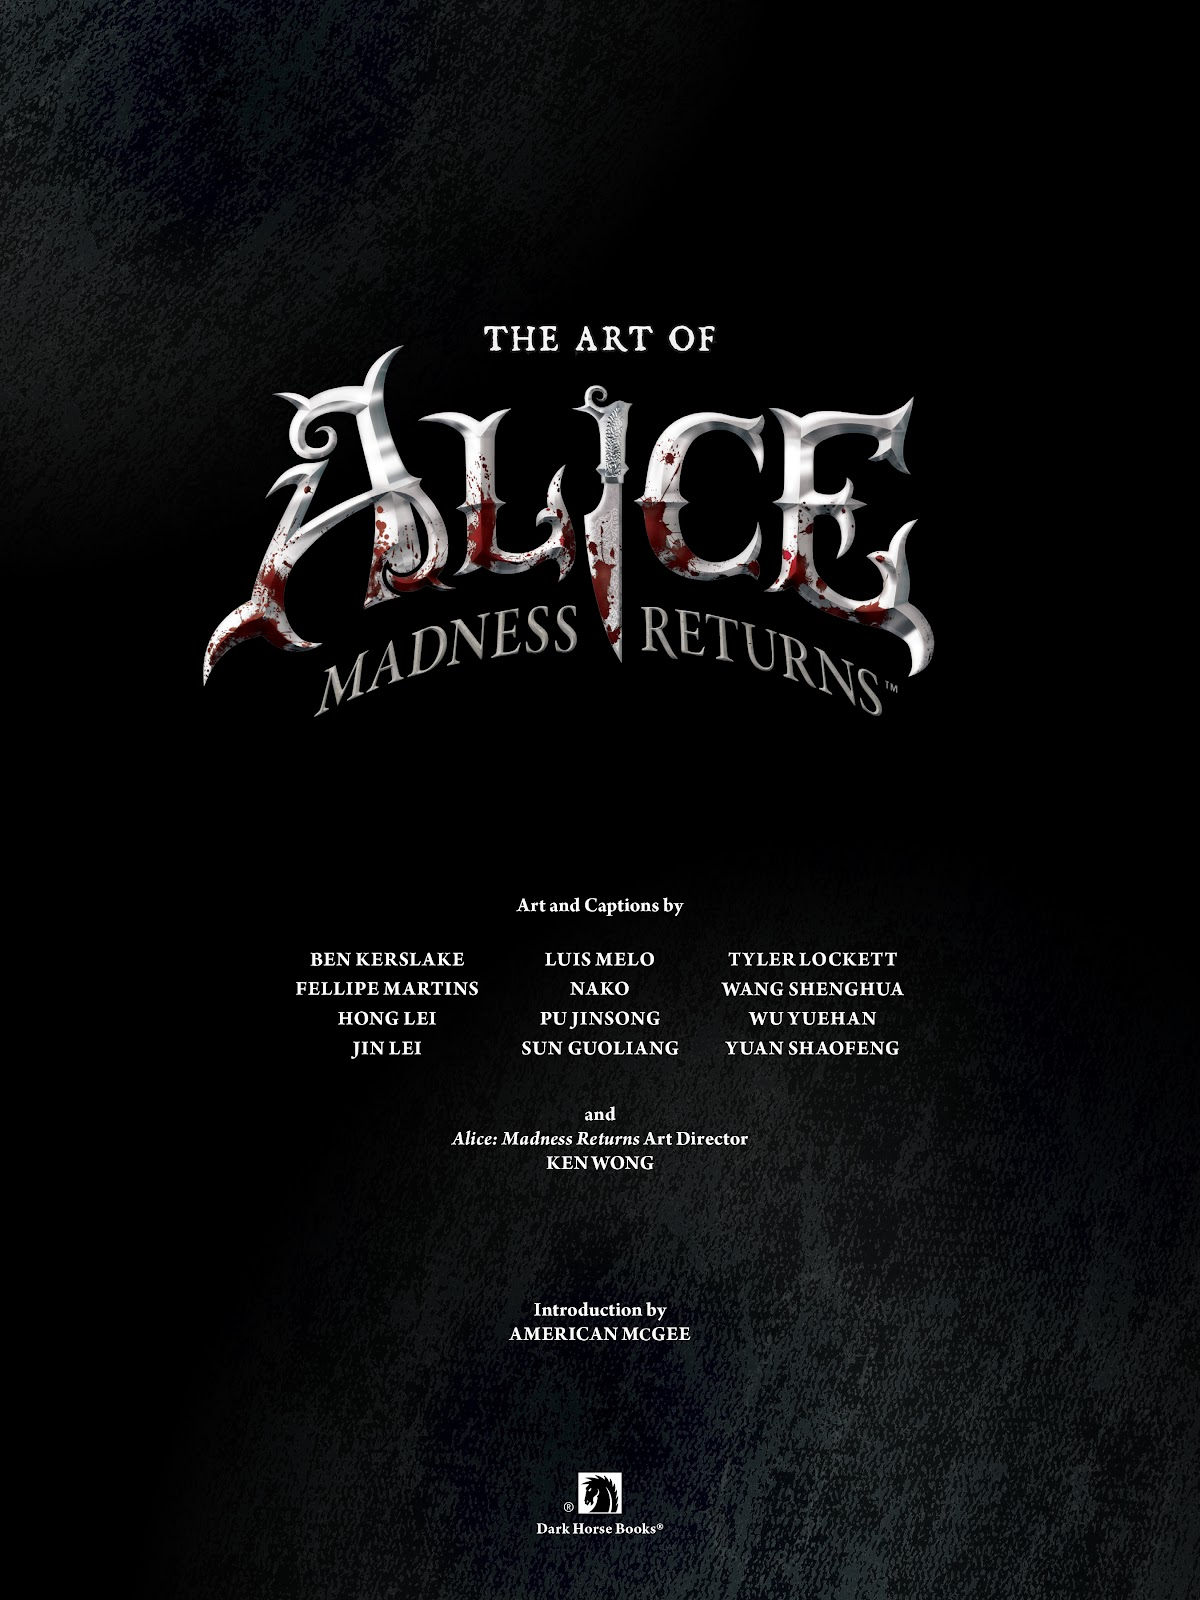 Read online The Art of Alice: Madness Returns comic -  Issue # TPB (Part 1) - 5